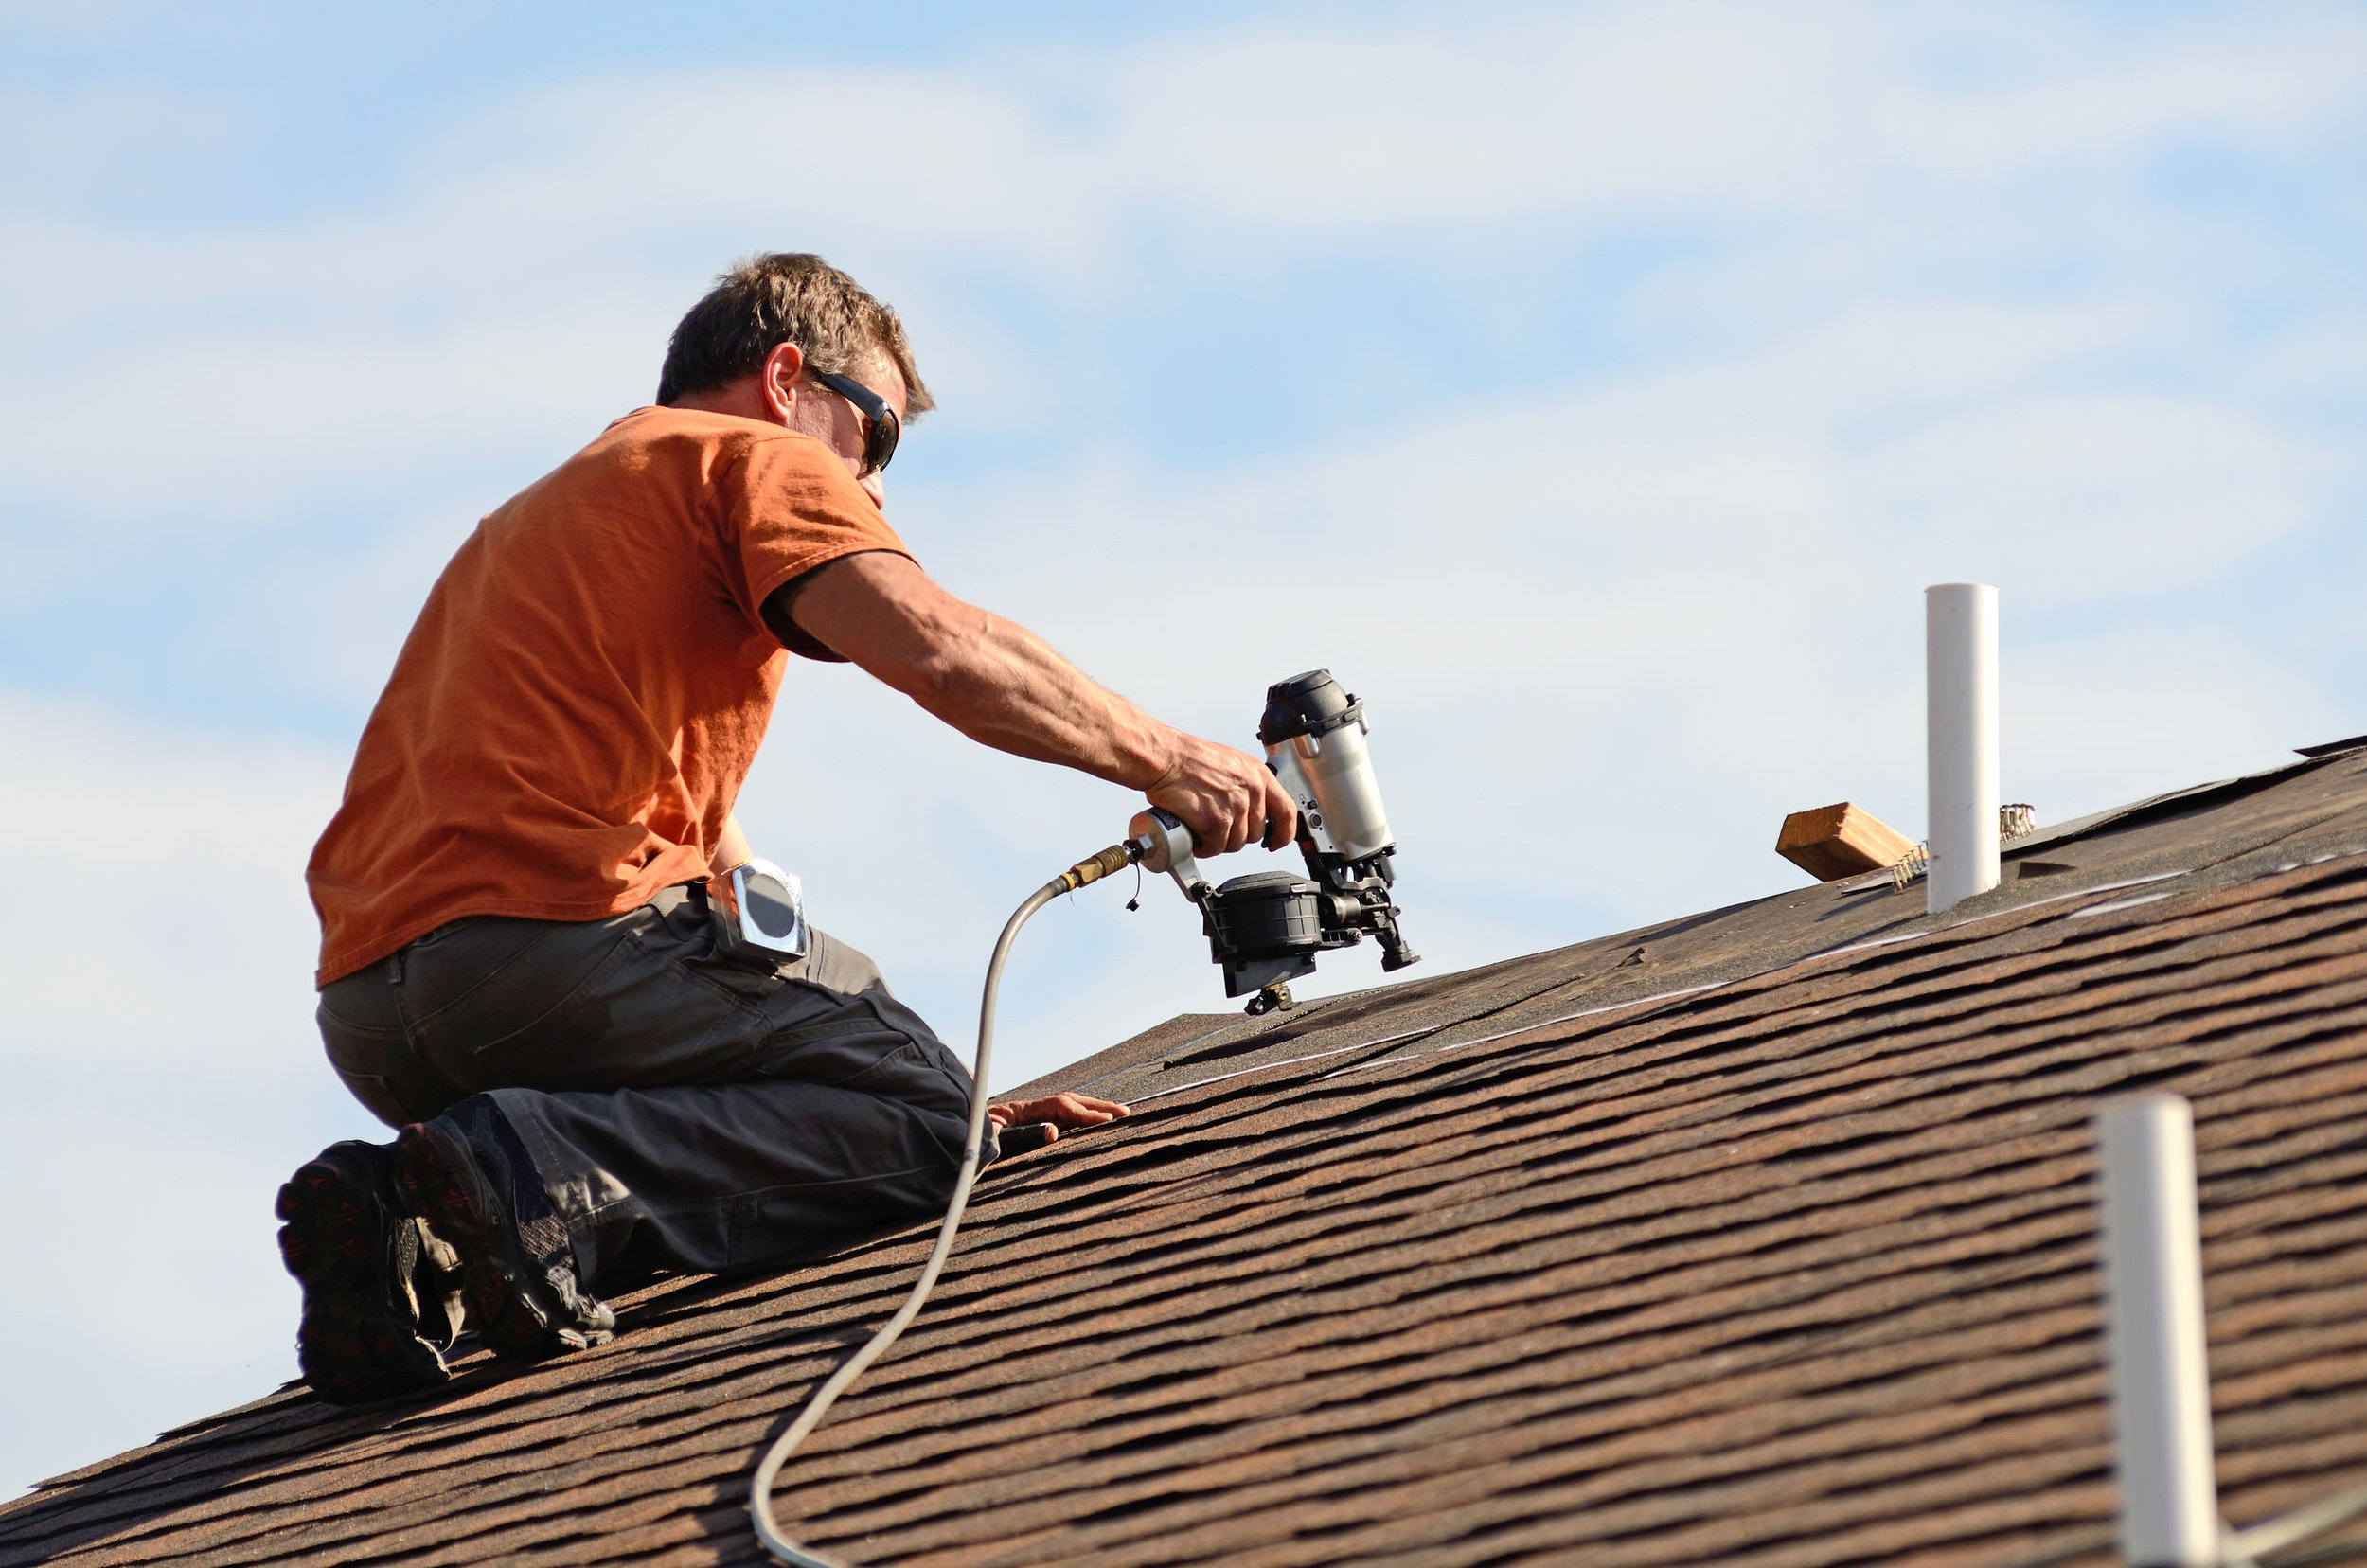 Professional Installation is Important When Roofing. Call UWD of Ft. Wayne Today